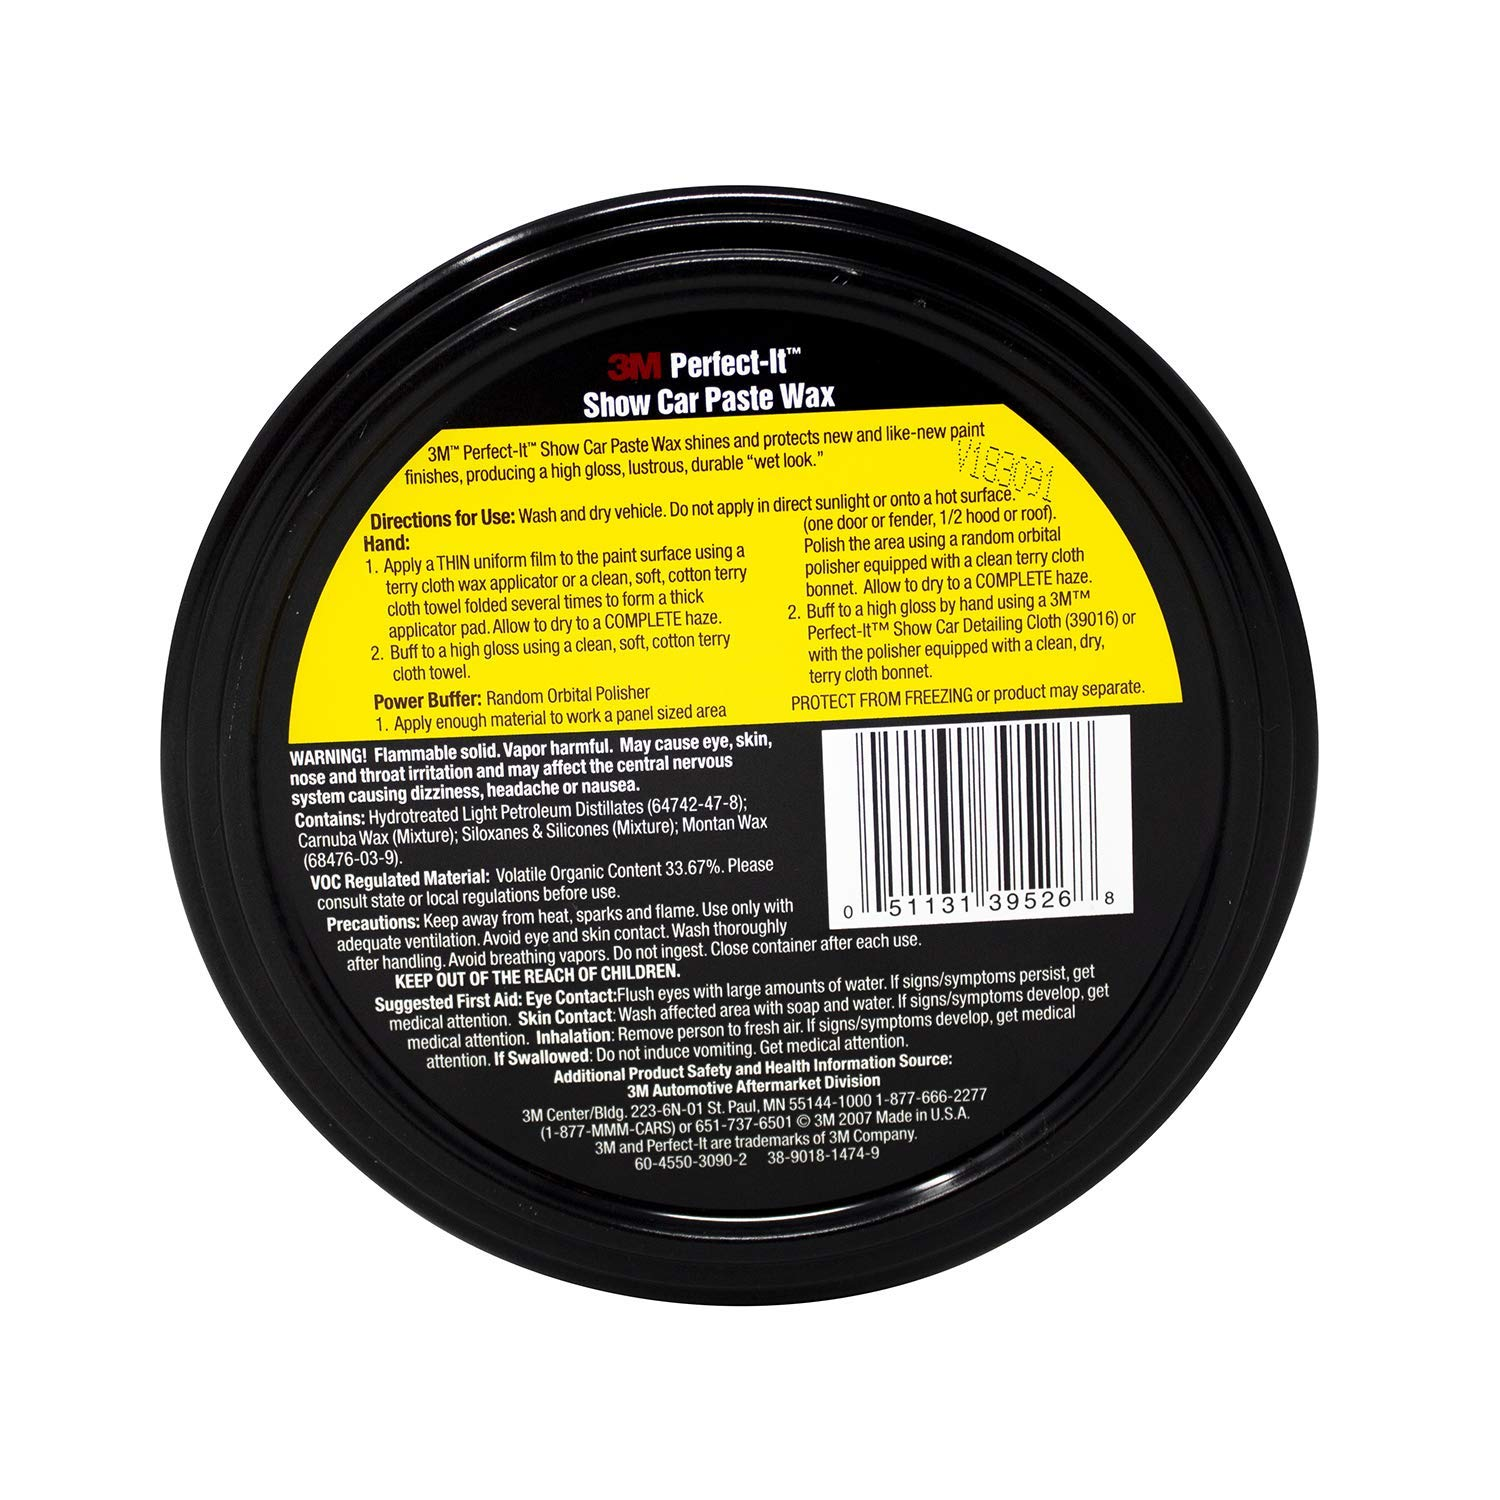 3M 39526 Perfect-It Show Car Paste Wax - 10.5 oz. by Perfect-It ...